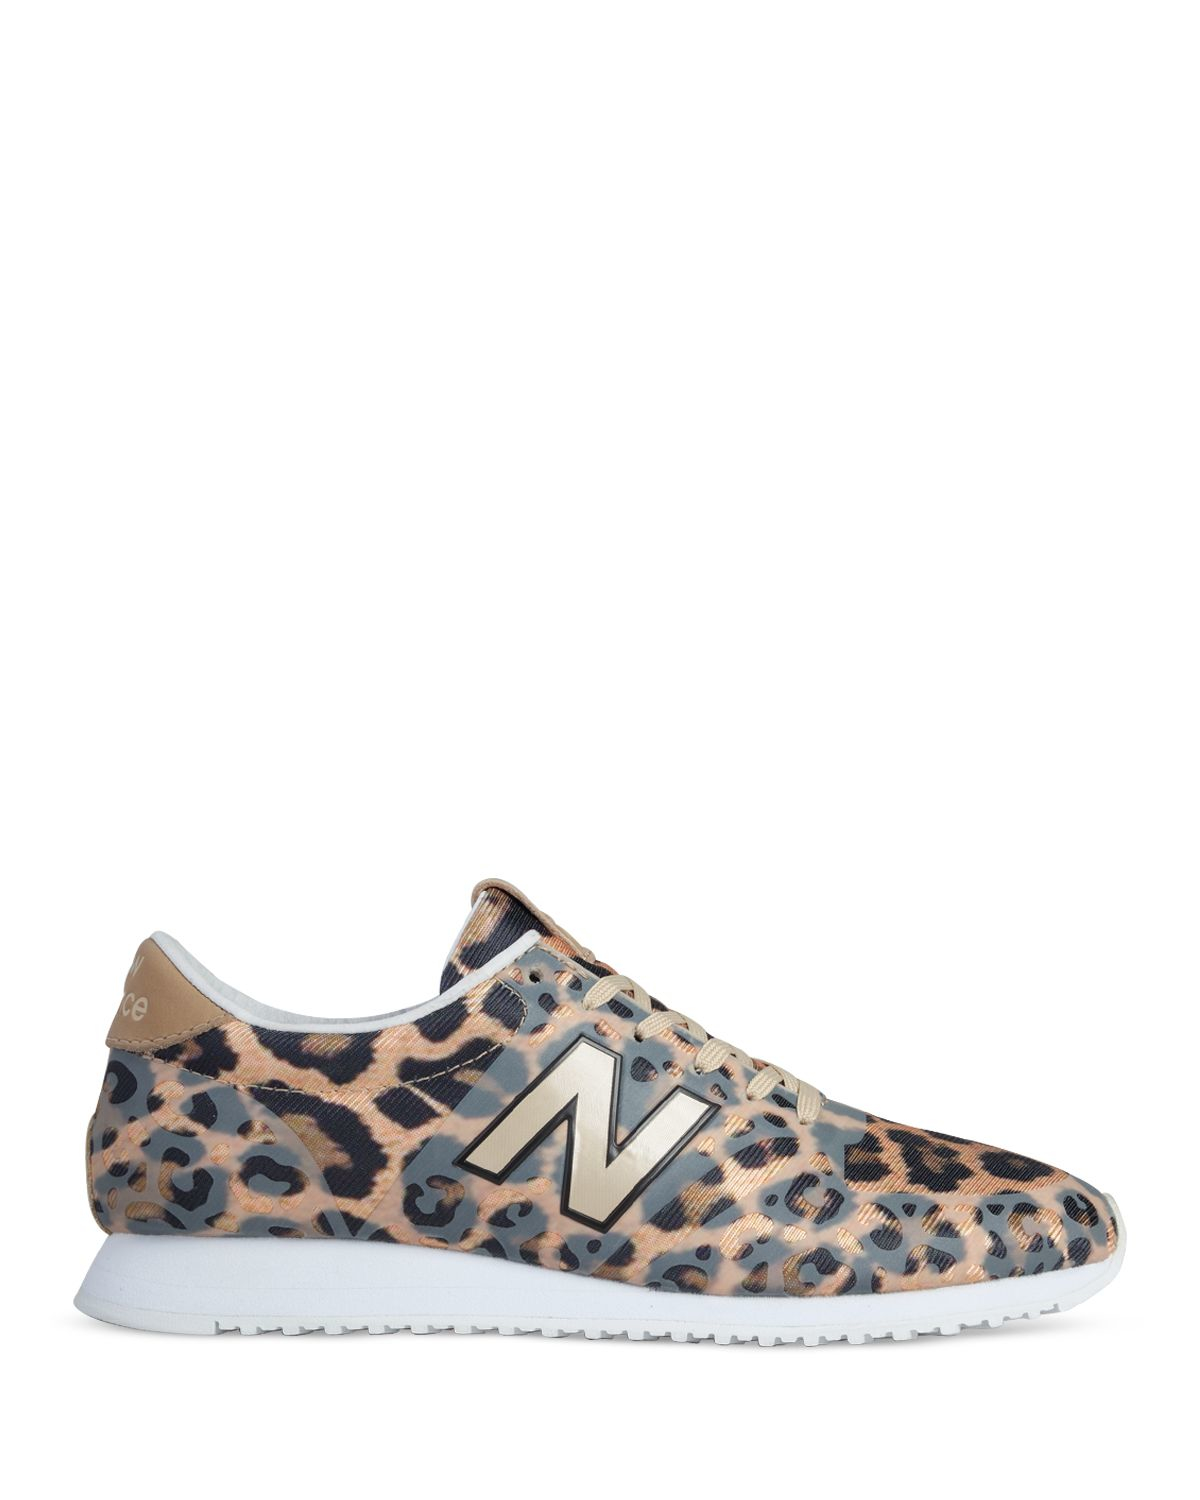 new balance leopard print 420 sneakers in animal leopard lyst. Black Bedroom Furniture Sets. Home Design Ideas